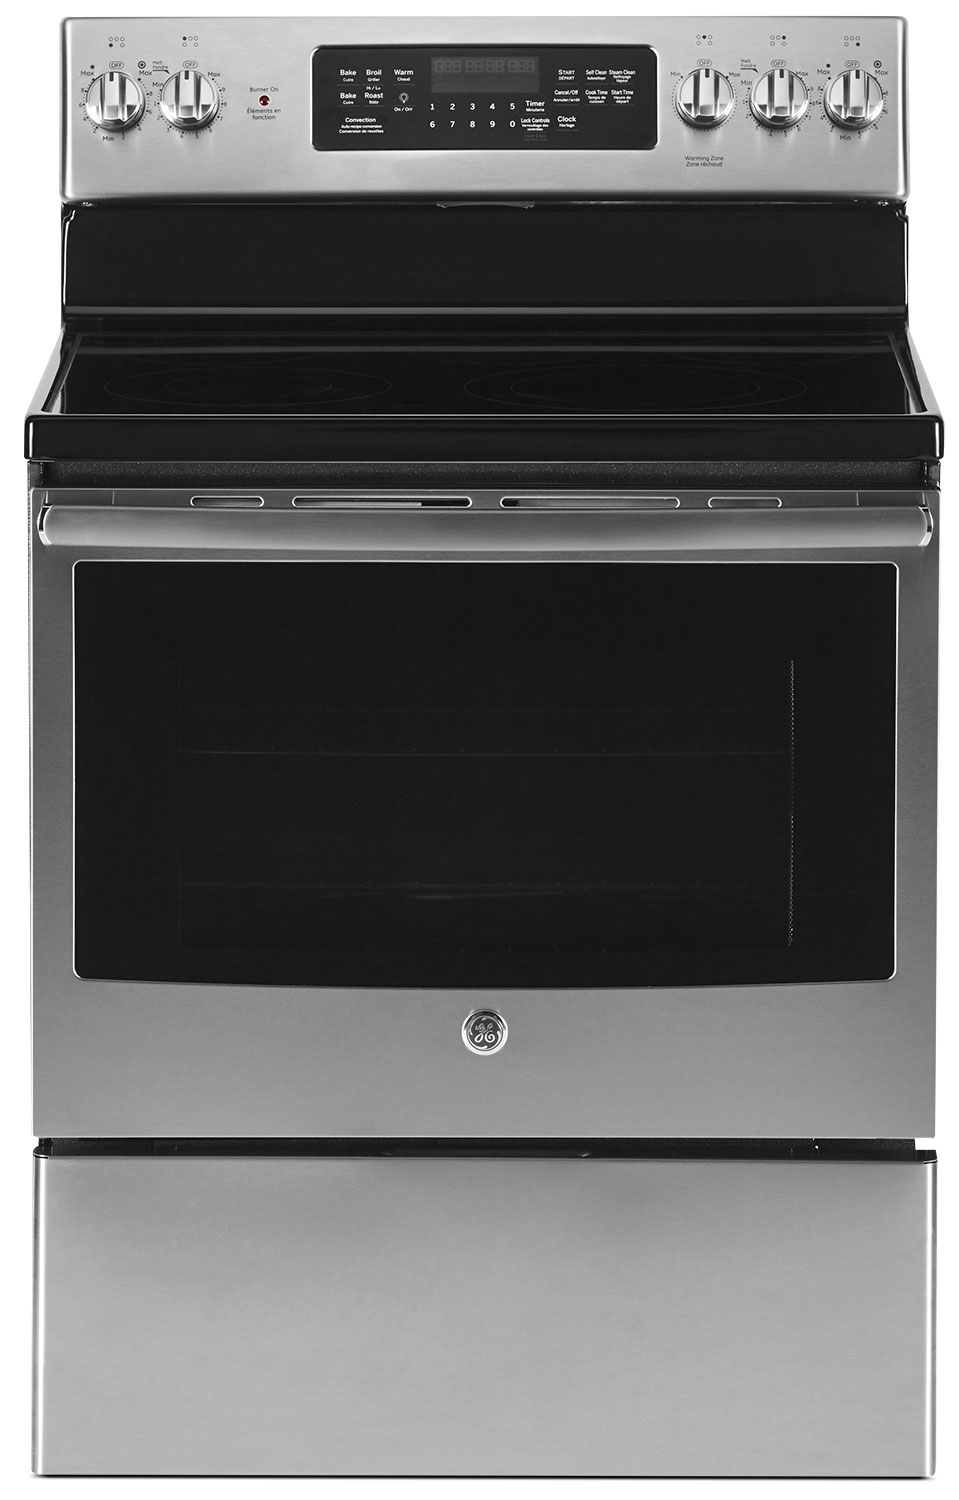 GE 5.0 Cu. Ft. Freestanding Electric Range – JCB840SKSS